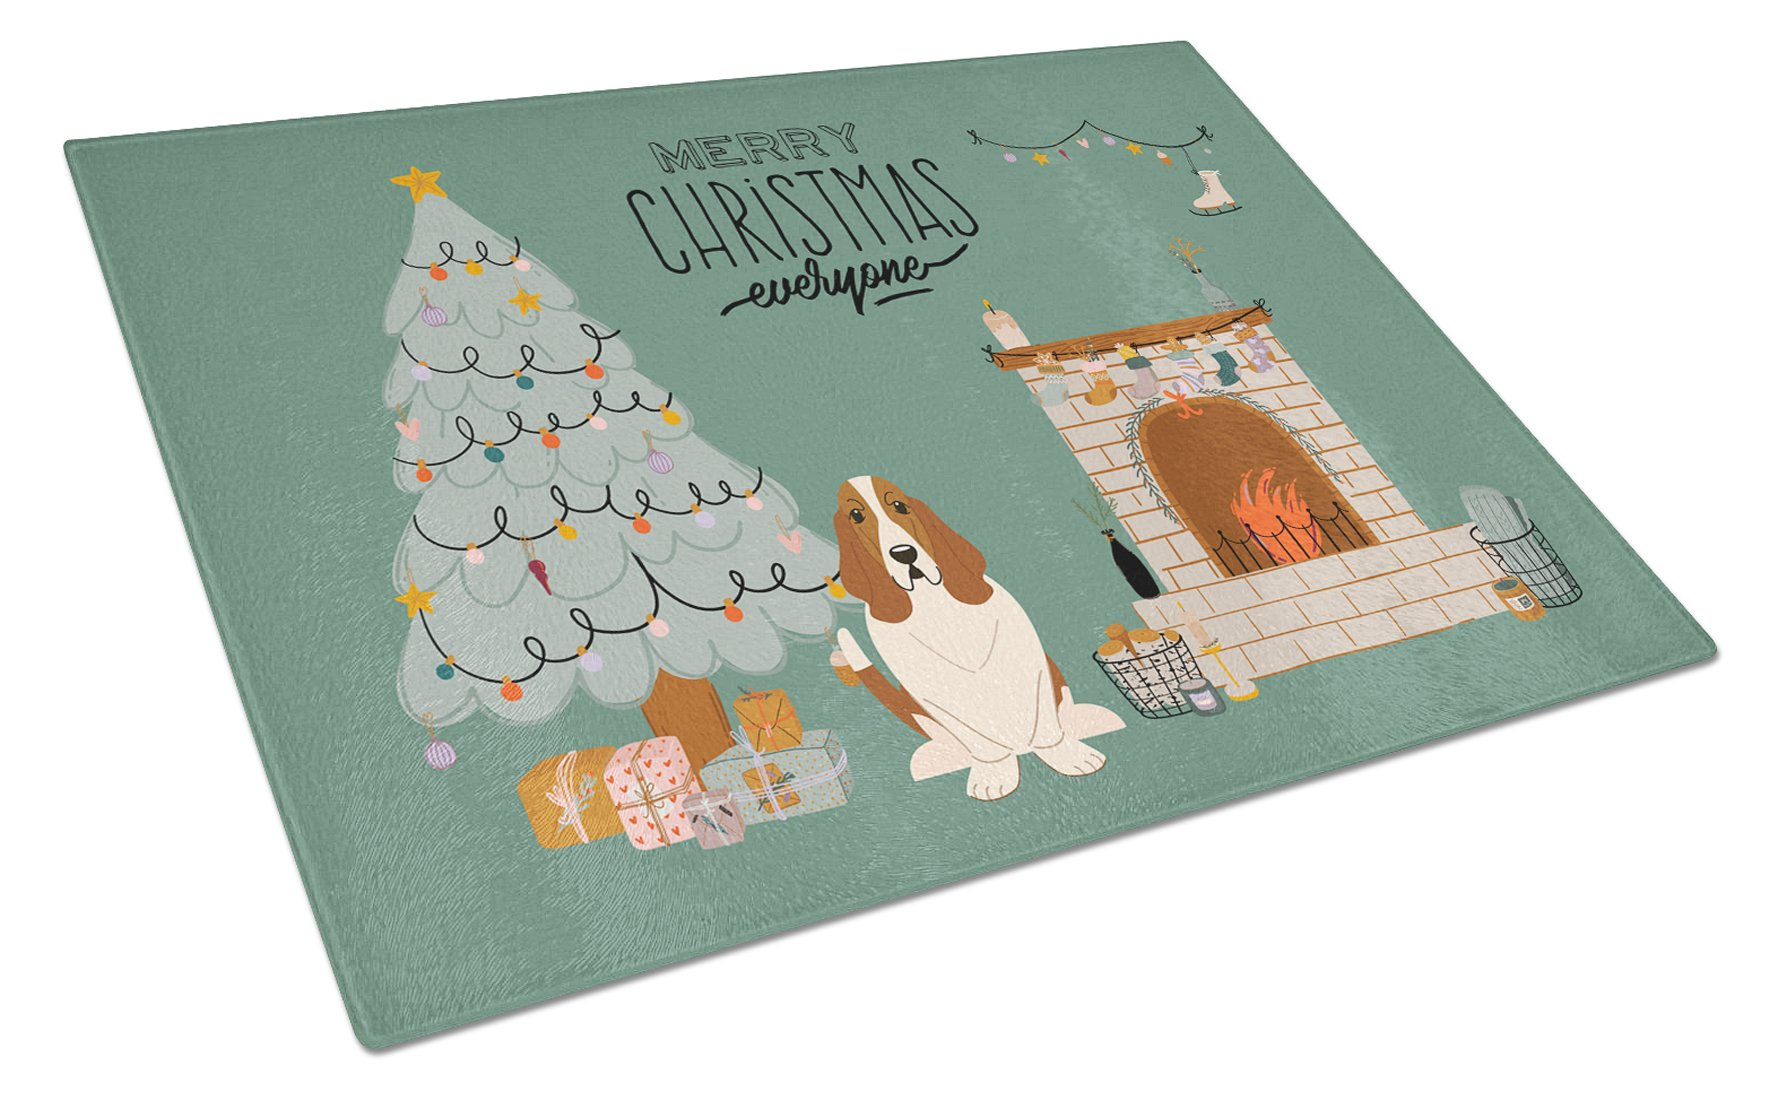 Basset Hound Christmas Everyone Glass Cutting Board Large CK7584LCB by Caroline's Treasures